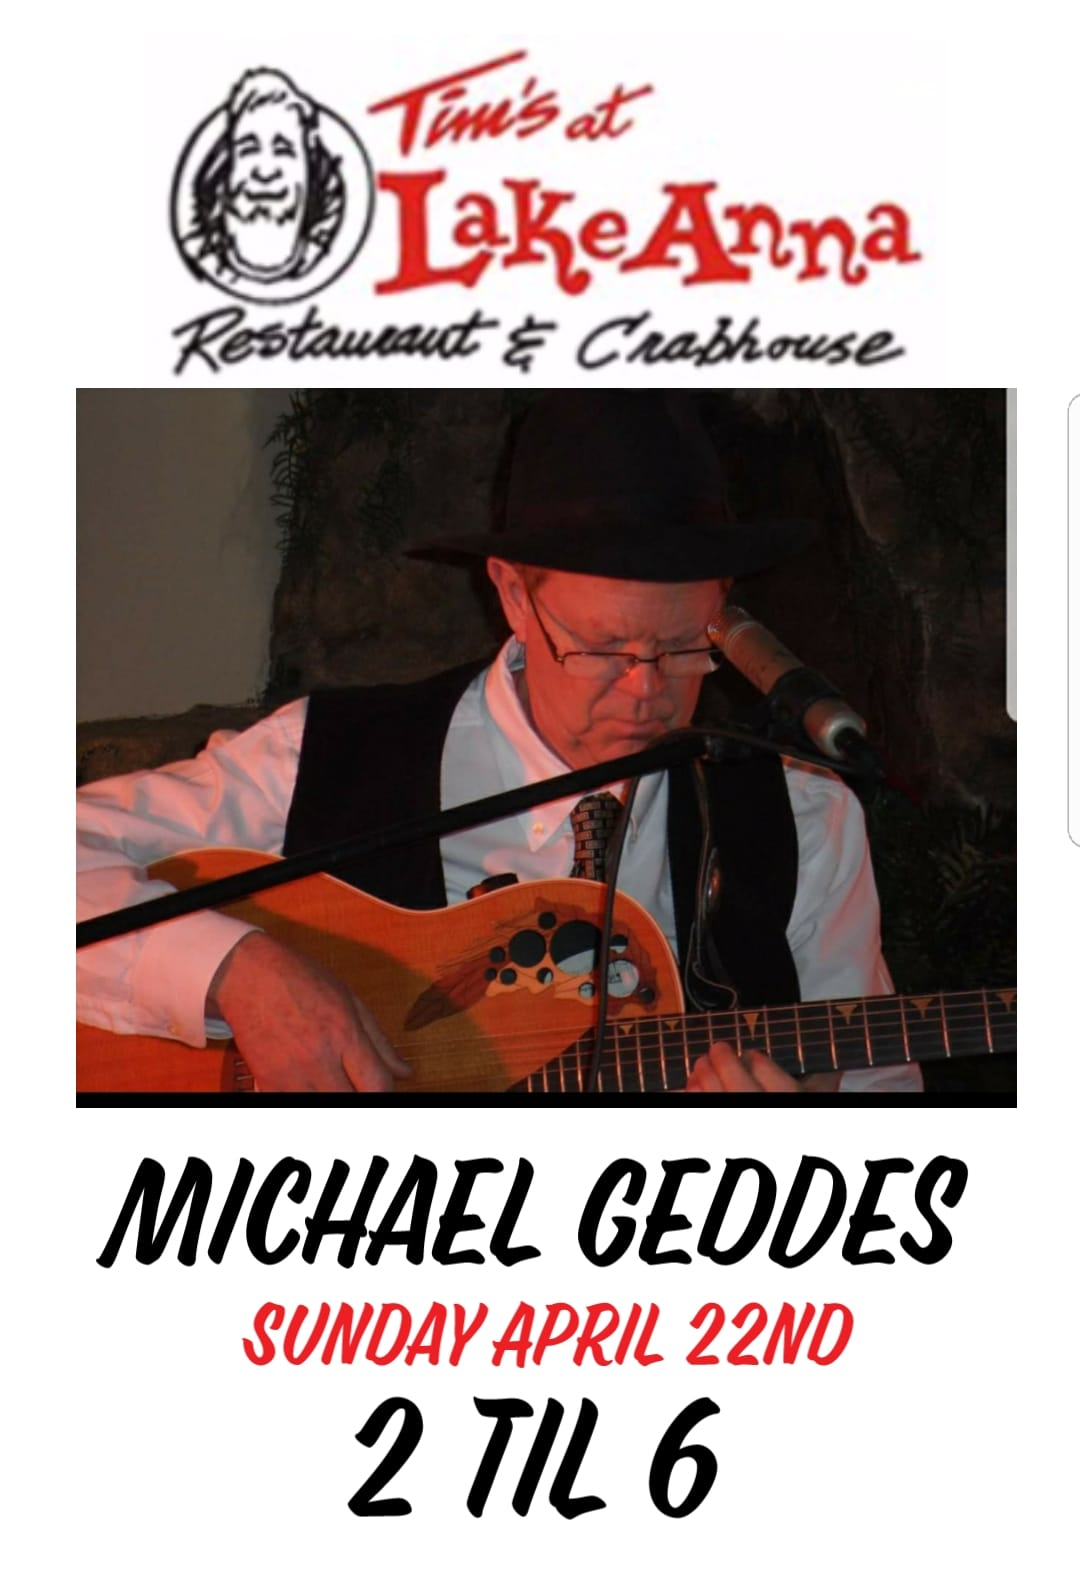 Music by: Michael Geddes